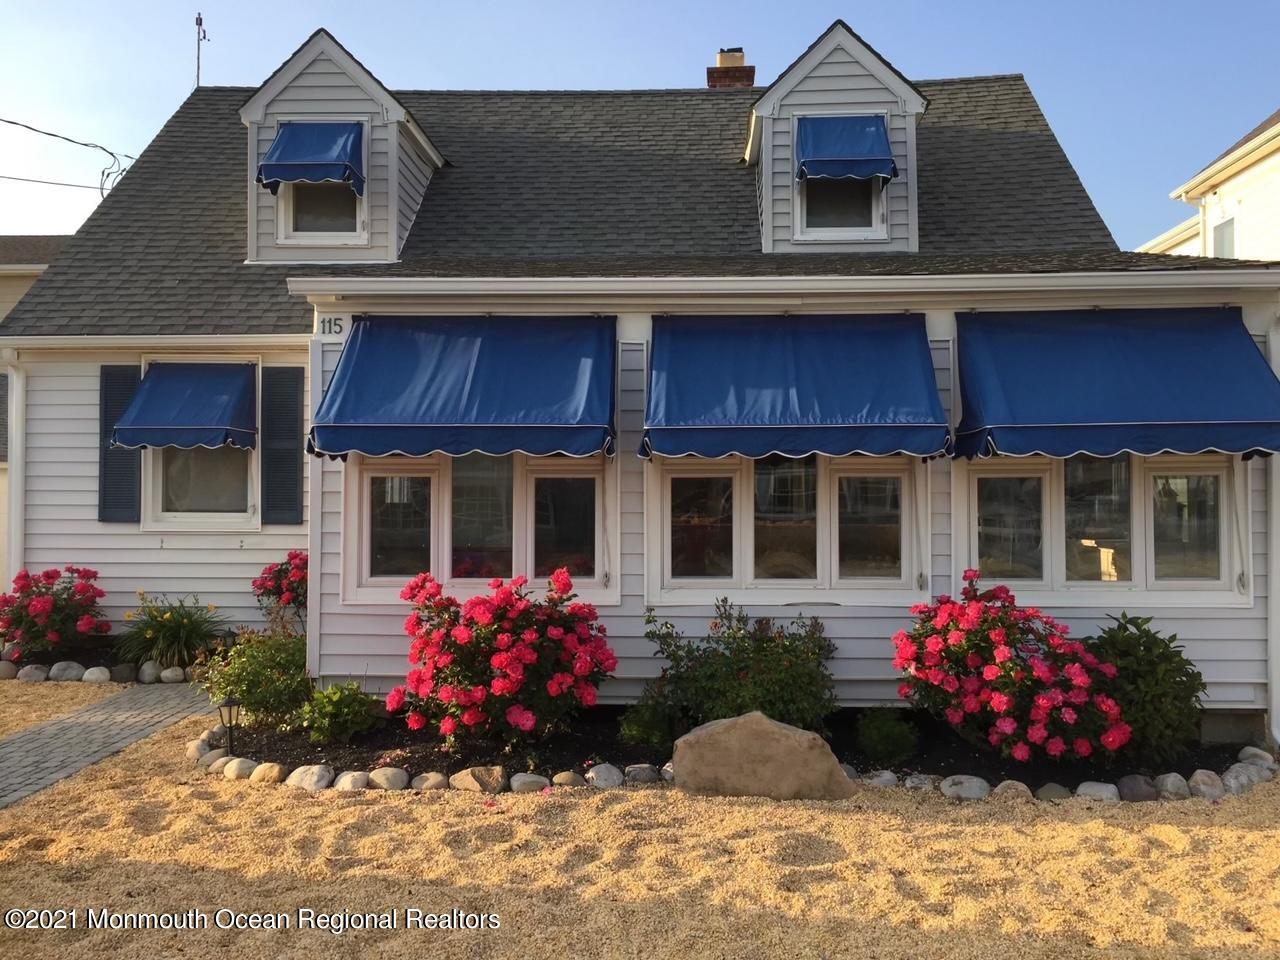 Photo of 115 8th Avenue, Normandy Beach, NJ 08739